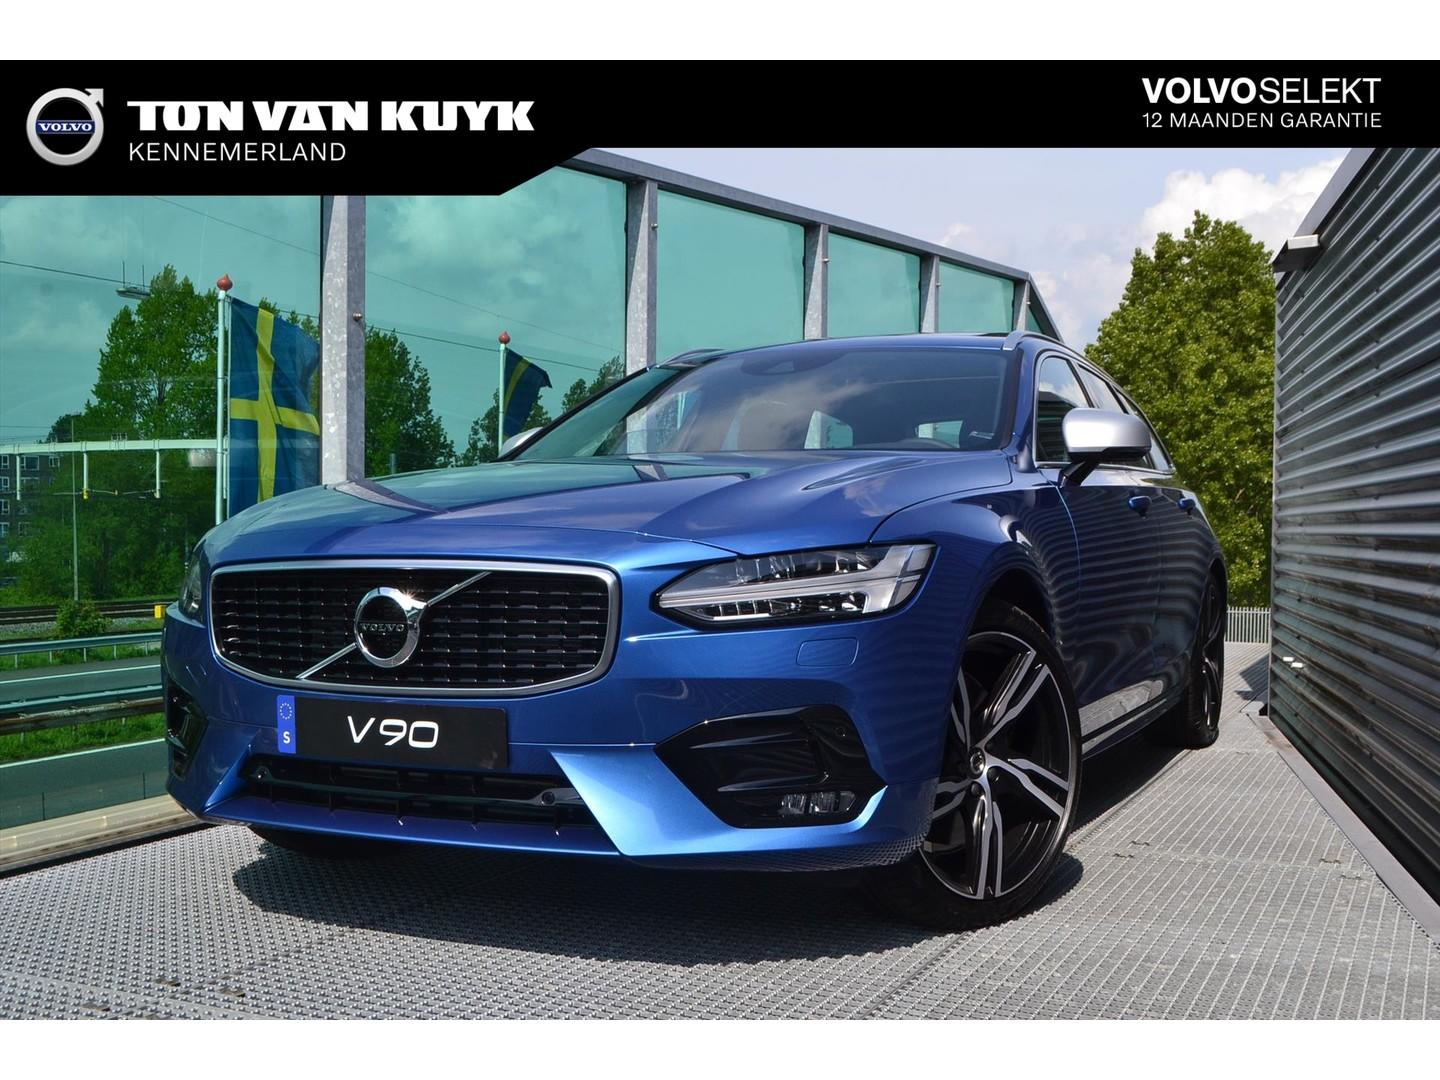 Volvo V90 T4 190pk geartronic business sport / luxury line / scandinavian